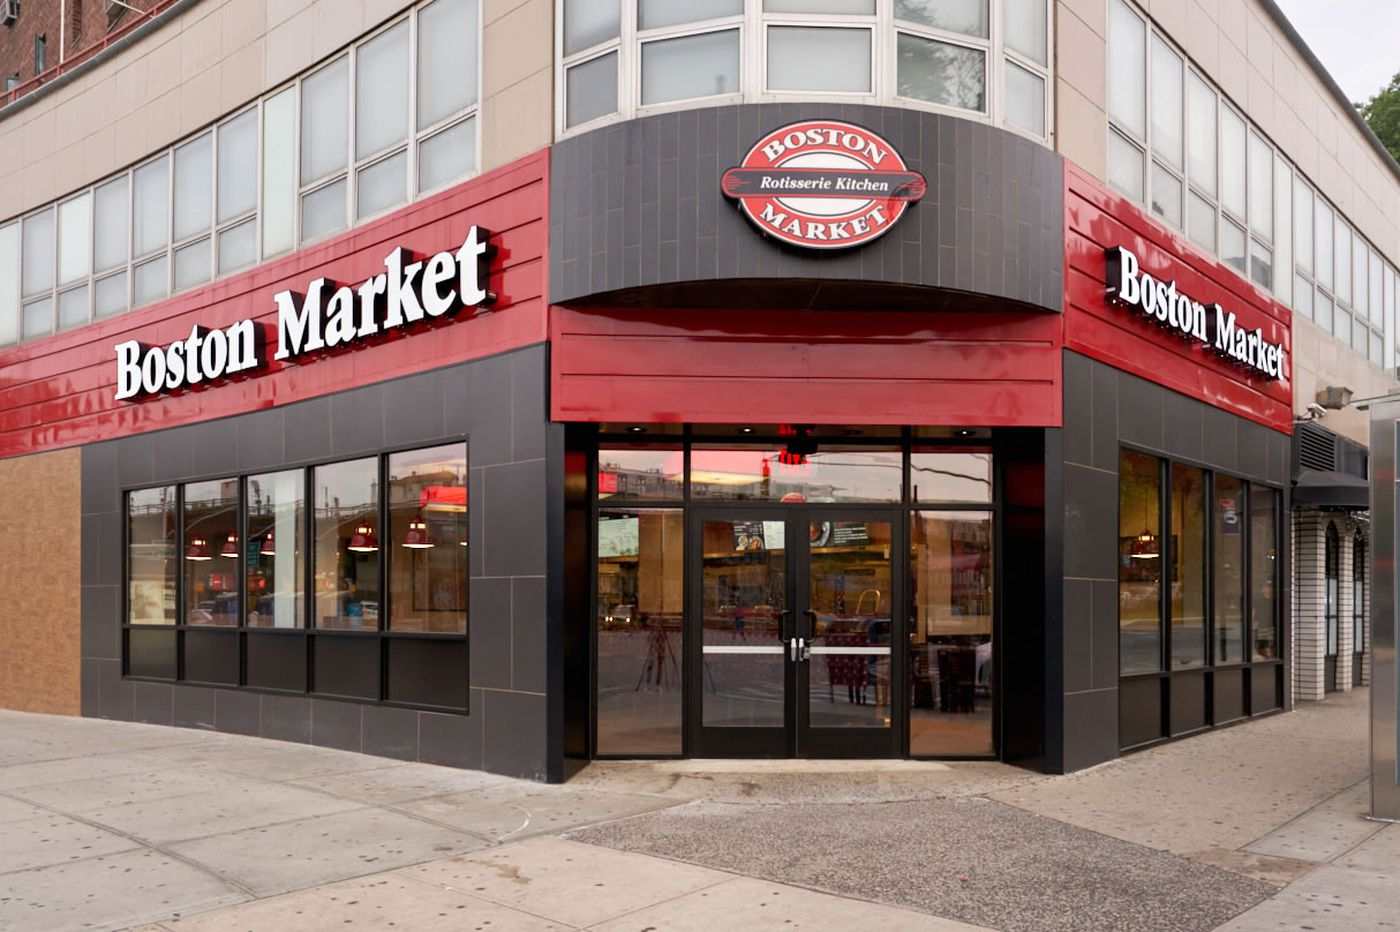 Philly-area businessman buys Boston Market restaurant chain